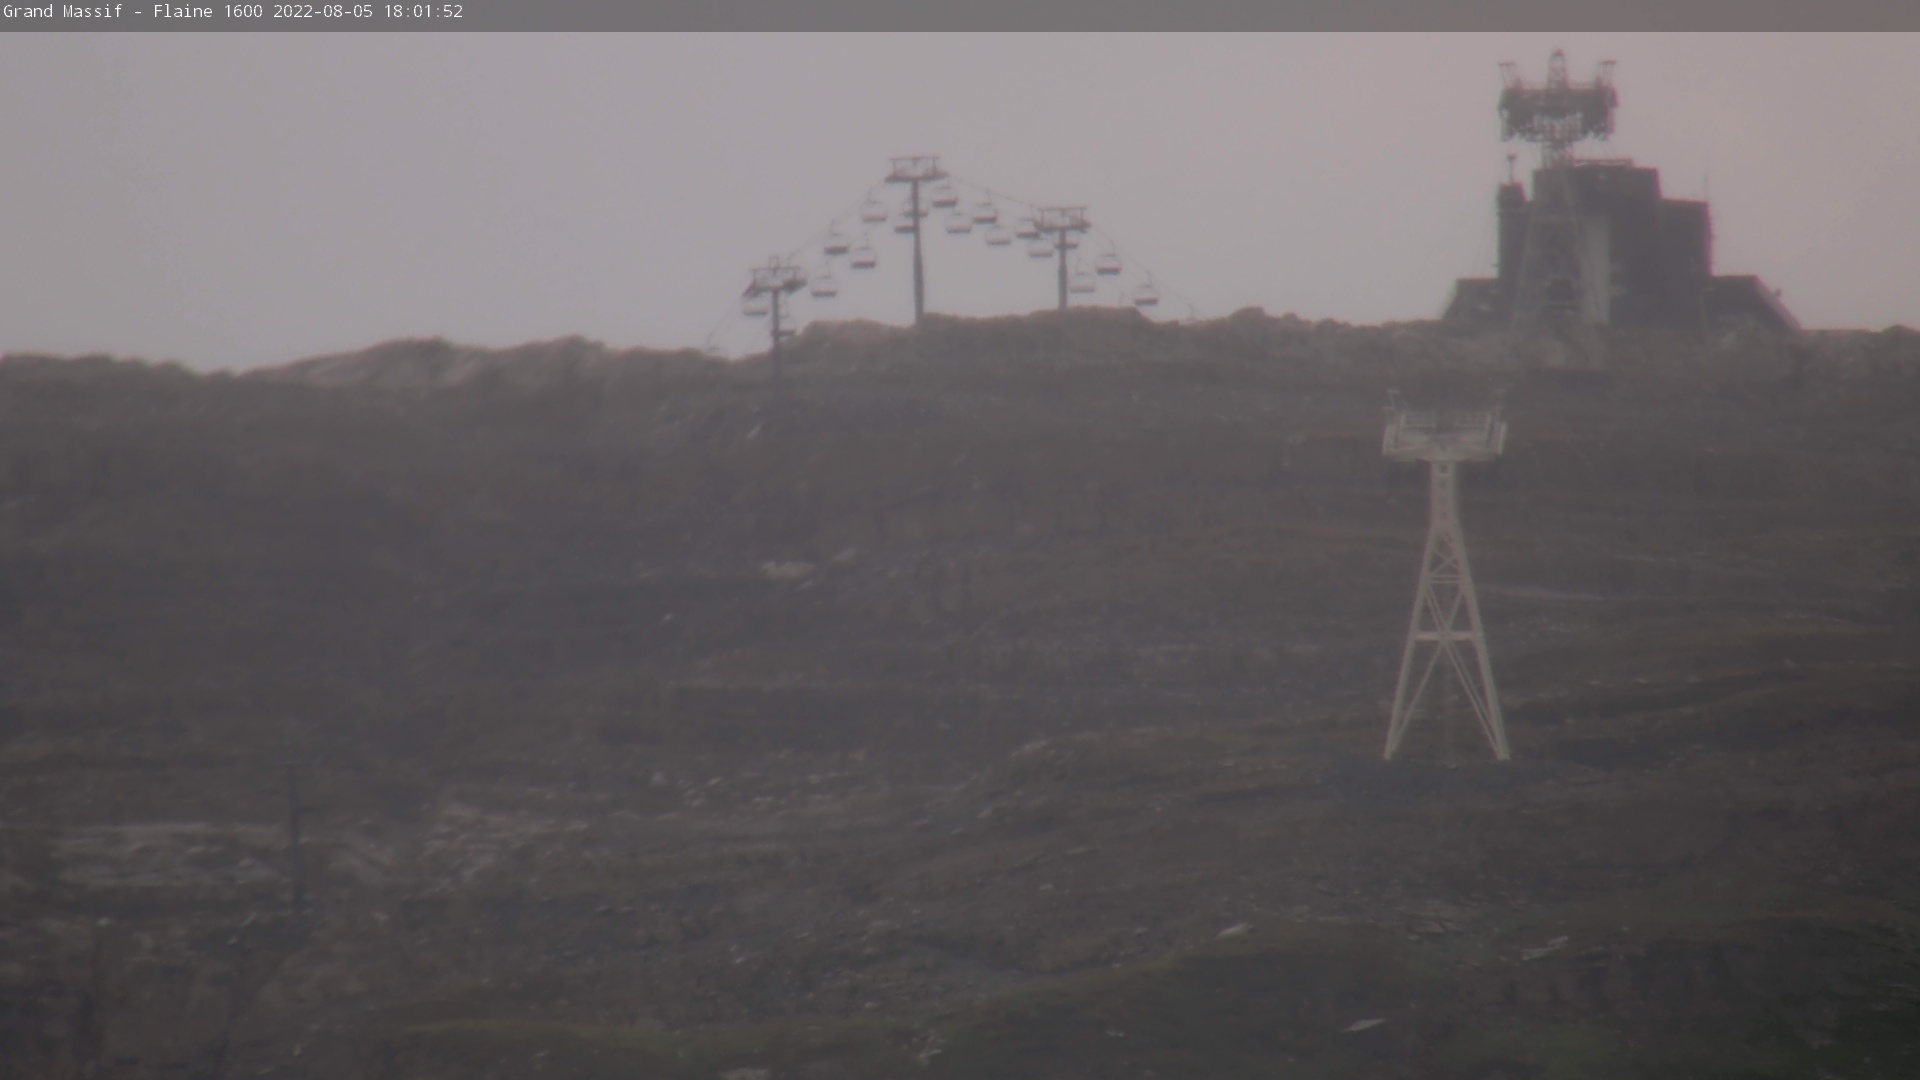 Webcam Flaine - 1600m